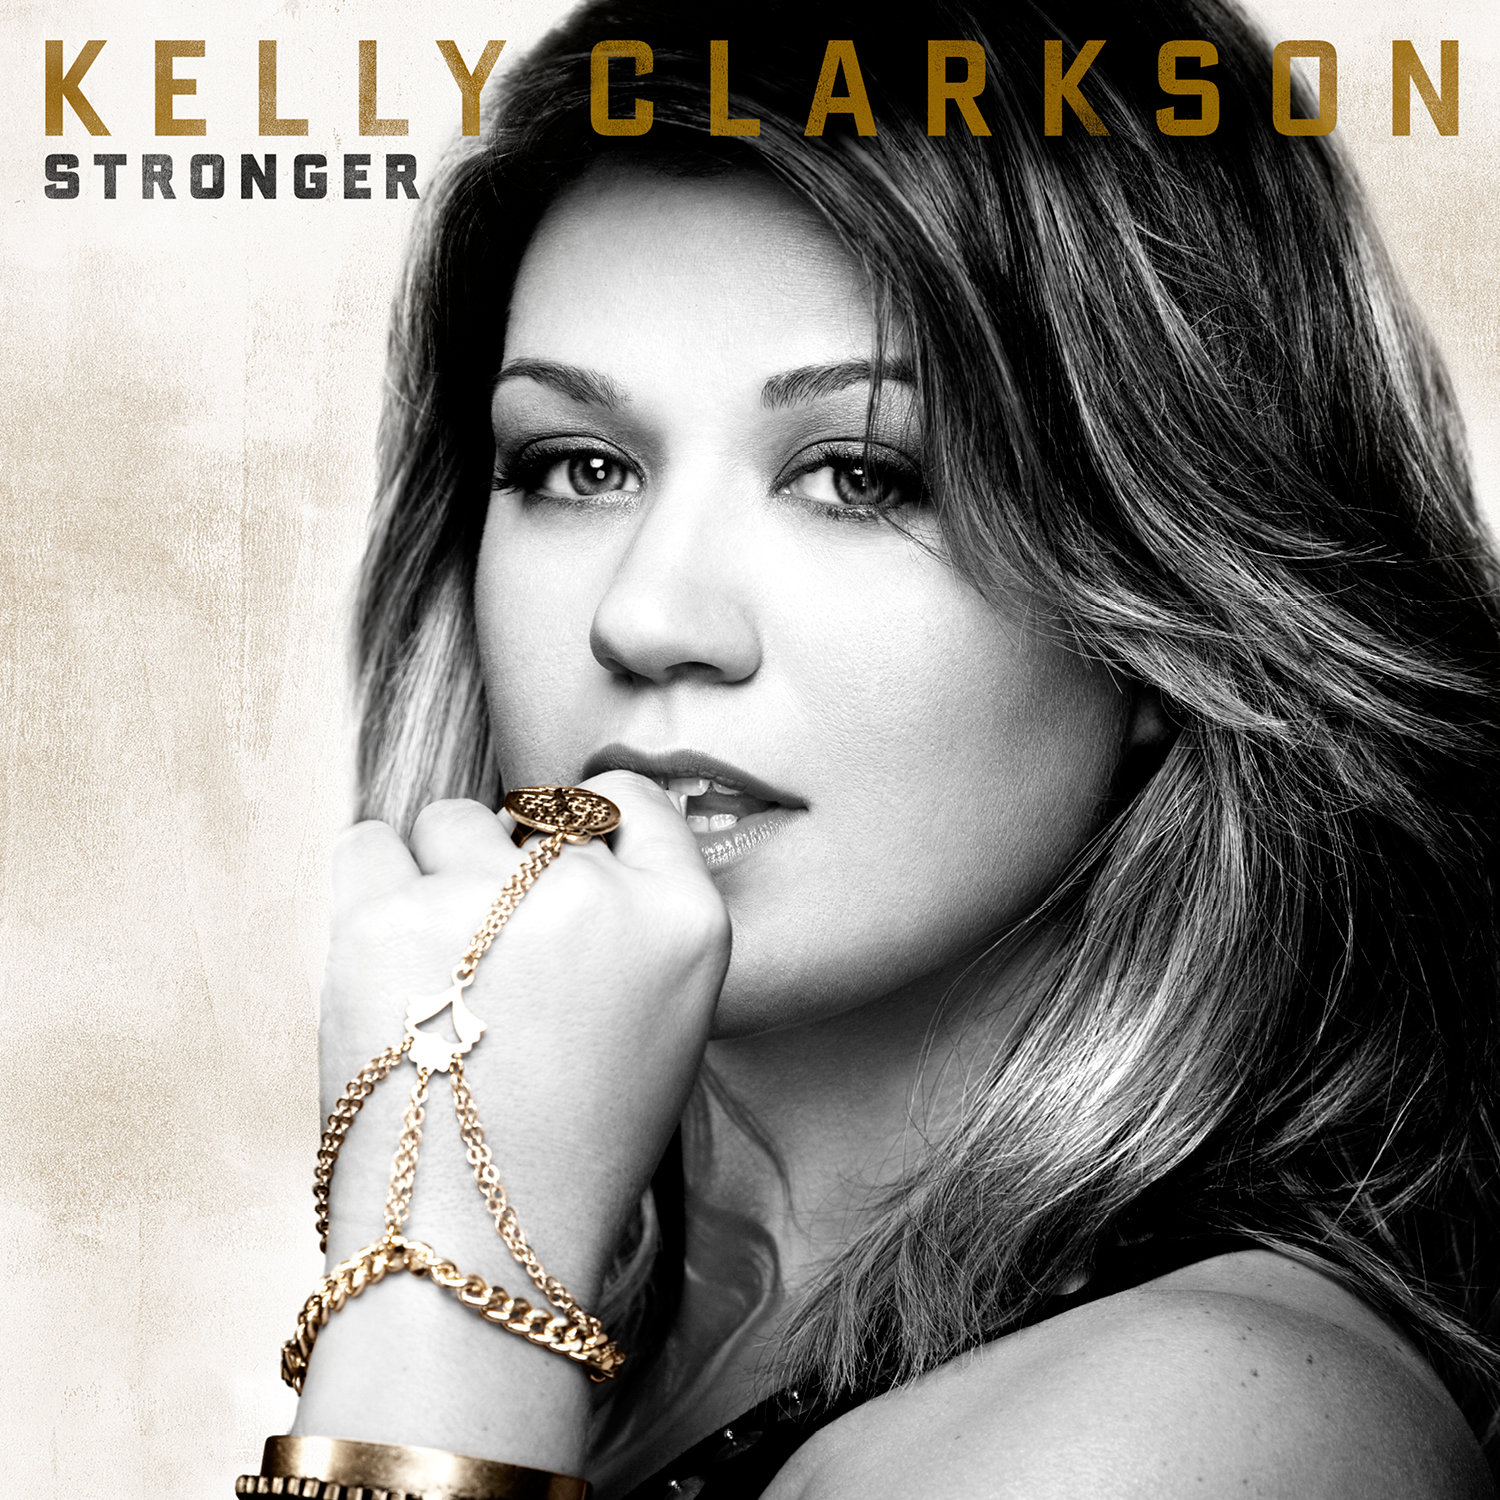 http://2.bp.blogspot.com/-wT_WUScyDTE/UM-b16uA4jI/AAAAAAAAOrc/mCPwPuIWVOg/s1600/kelly+clarkson+what+doesnt+kill+you+stronger.jpg